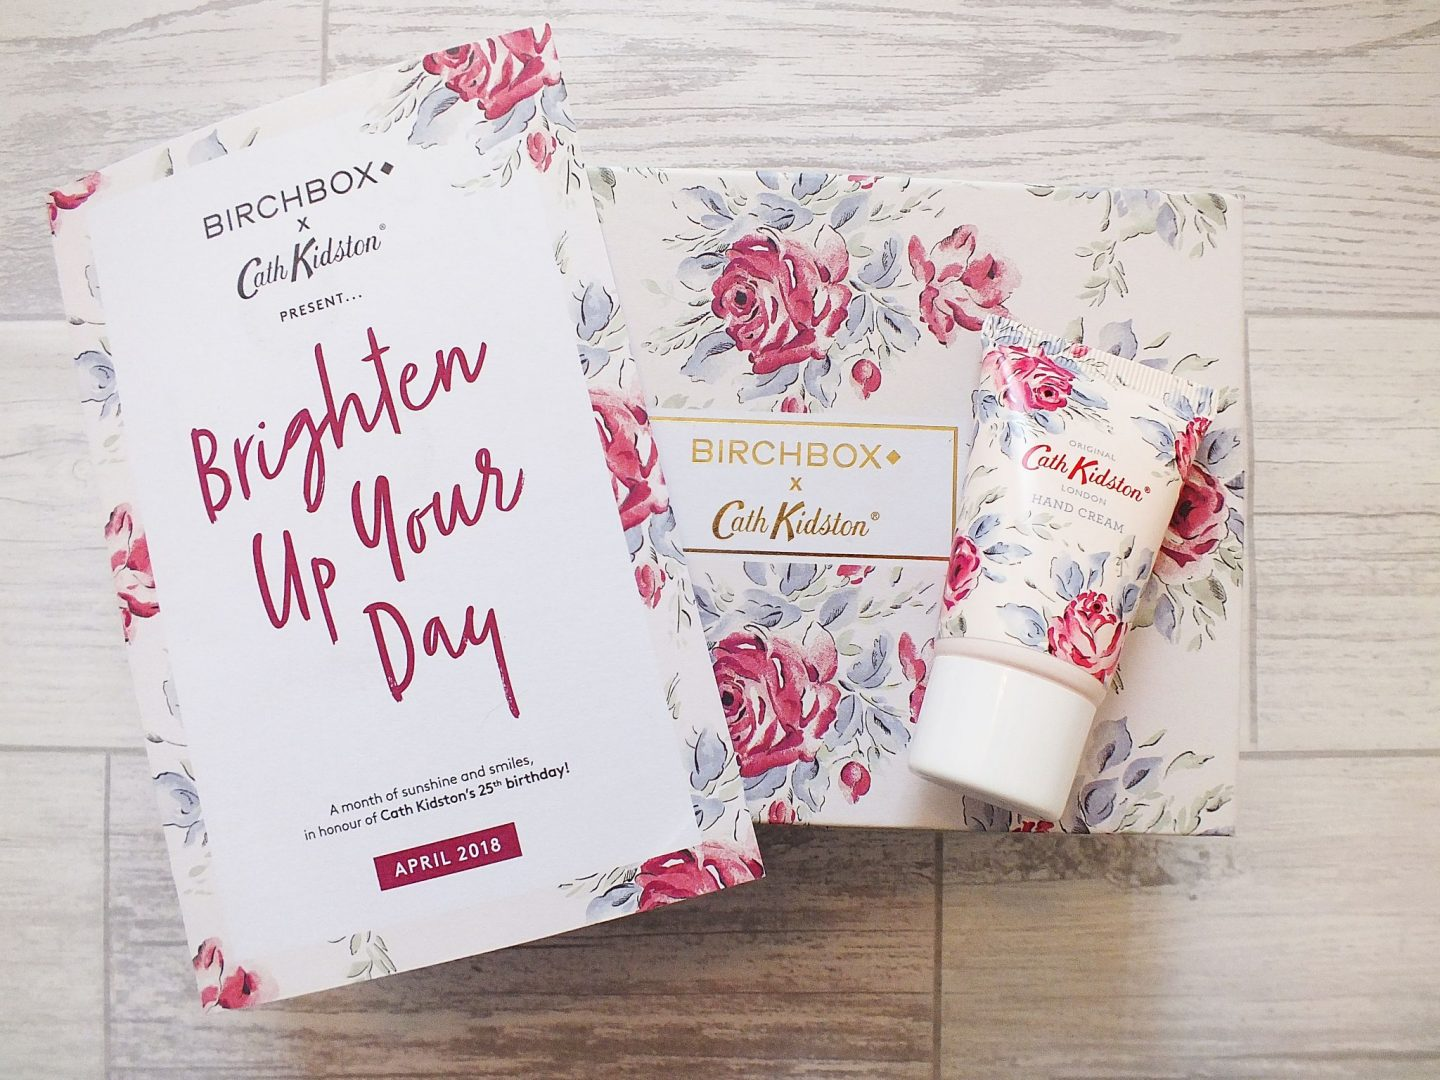 April Birchbox Cath Kidson Hand Cream on top of Birchbox flatlay